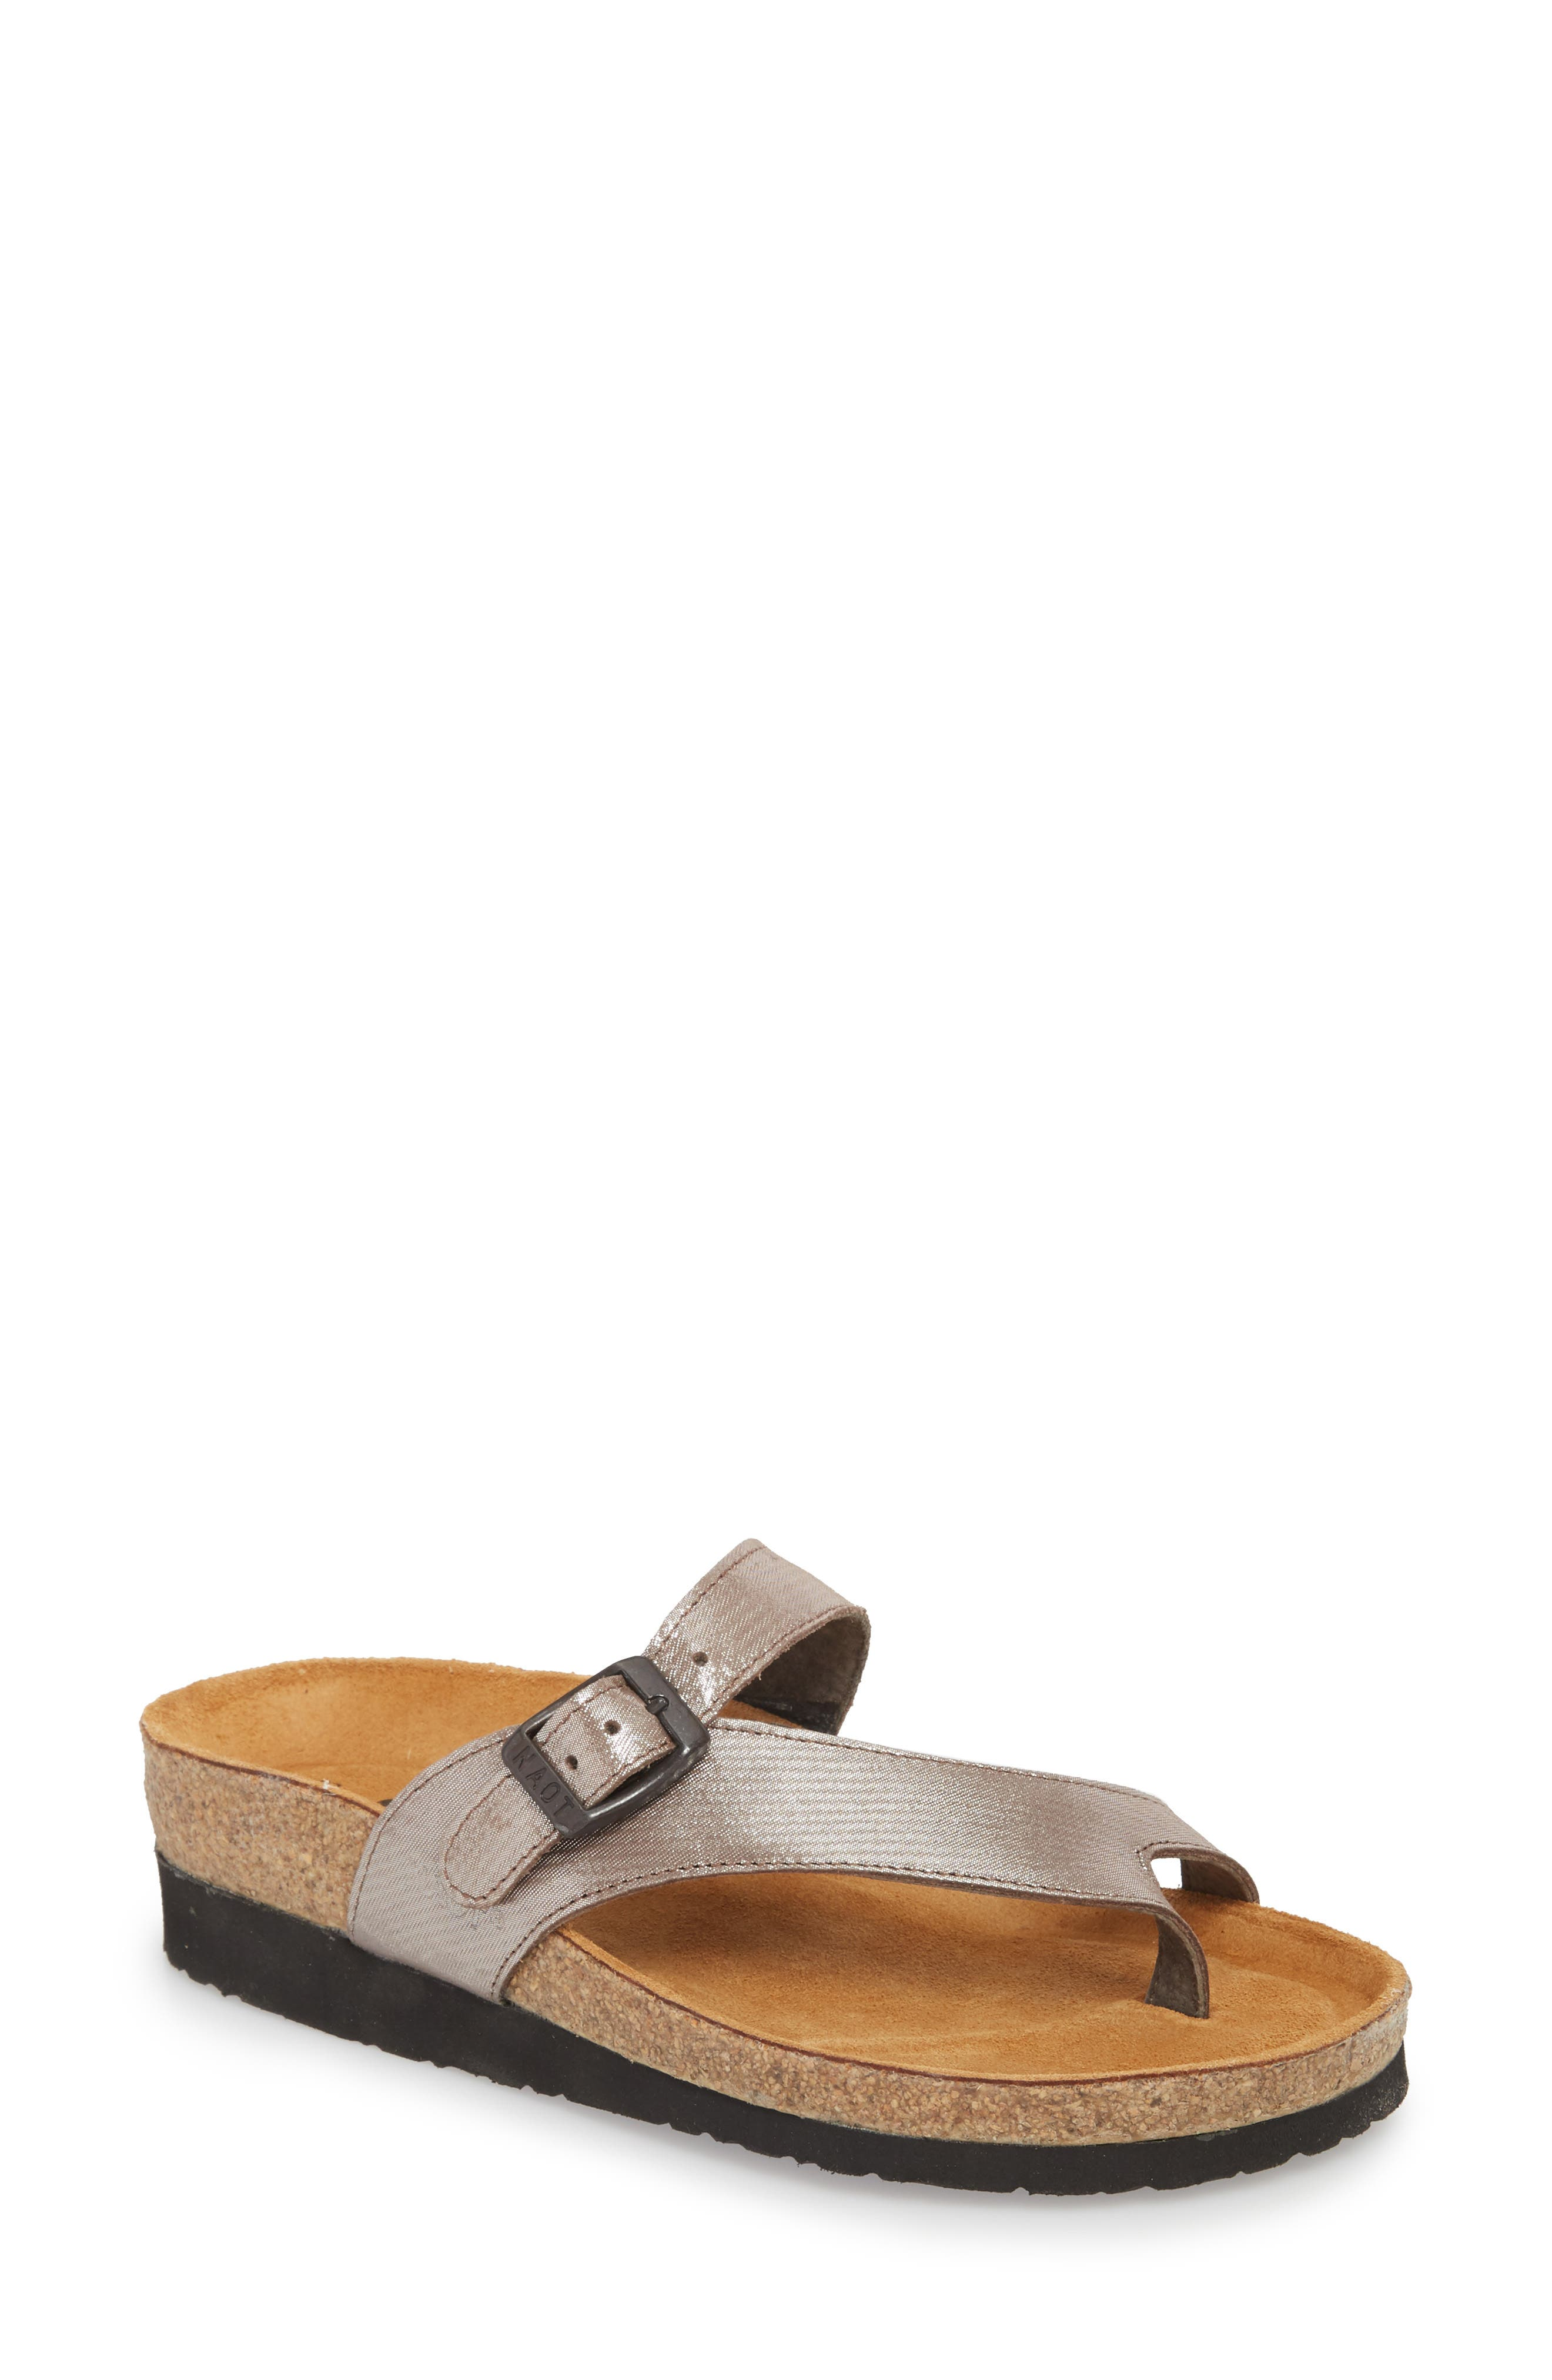 'Tahoe' Sandal,                         Main,                         color, SILVER LEATHER